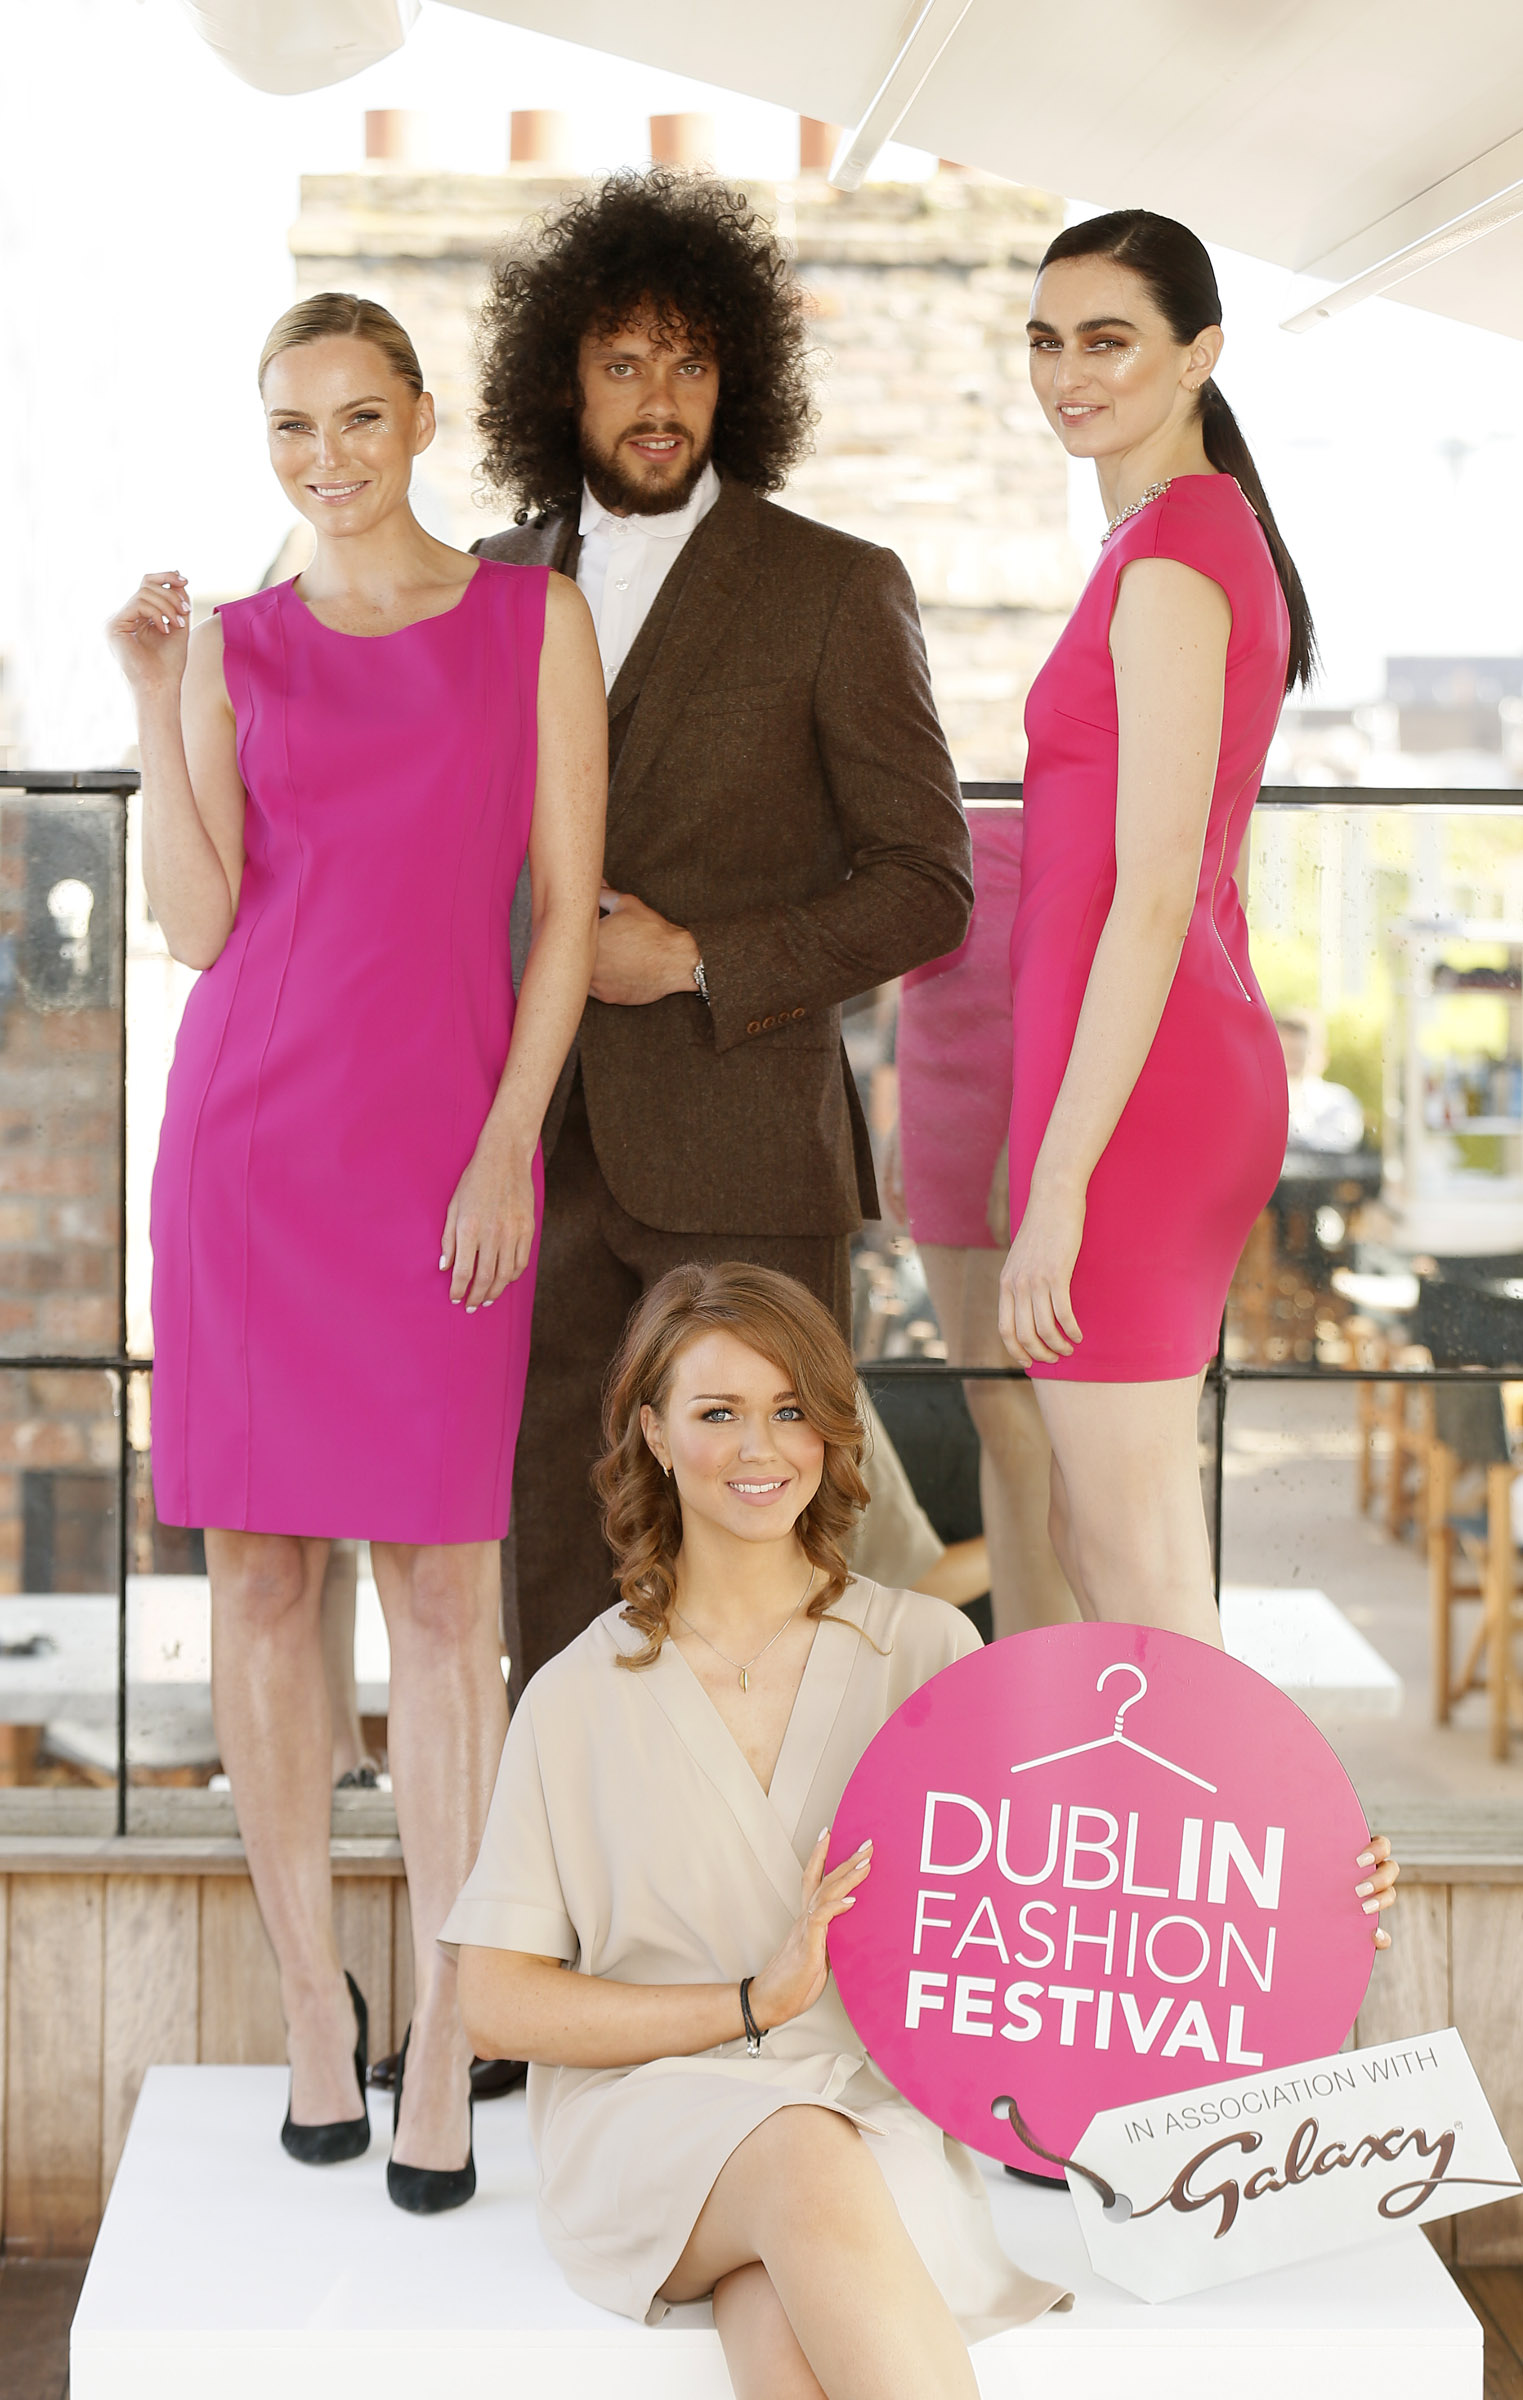 Dublin Fashion Festival